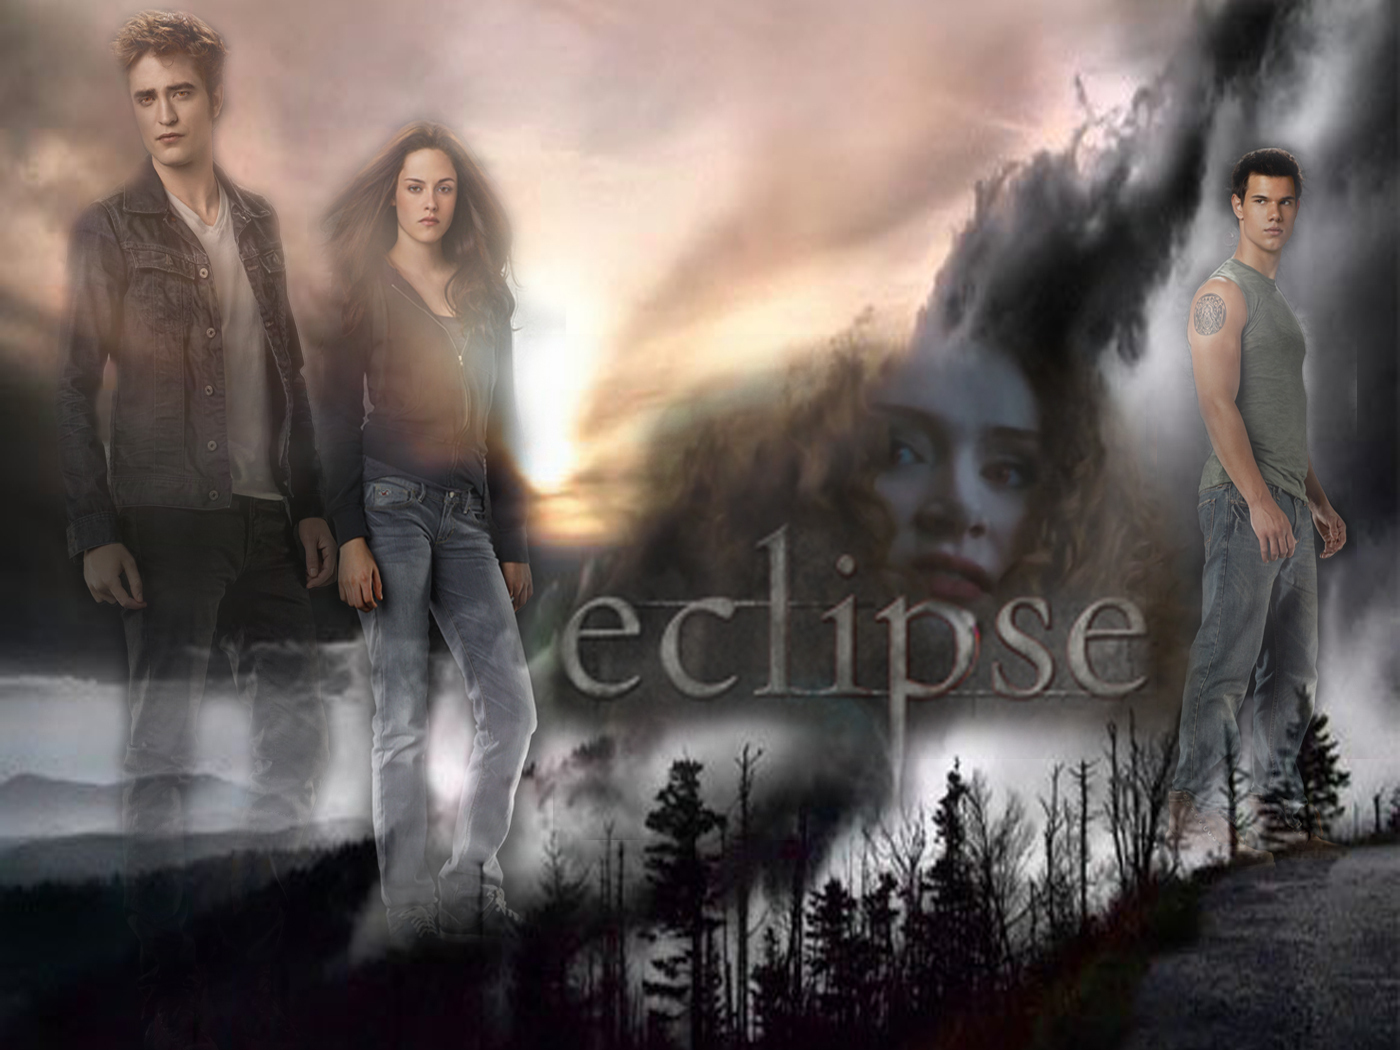 twilight series images eclipse - photo #42